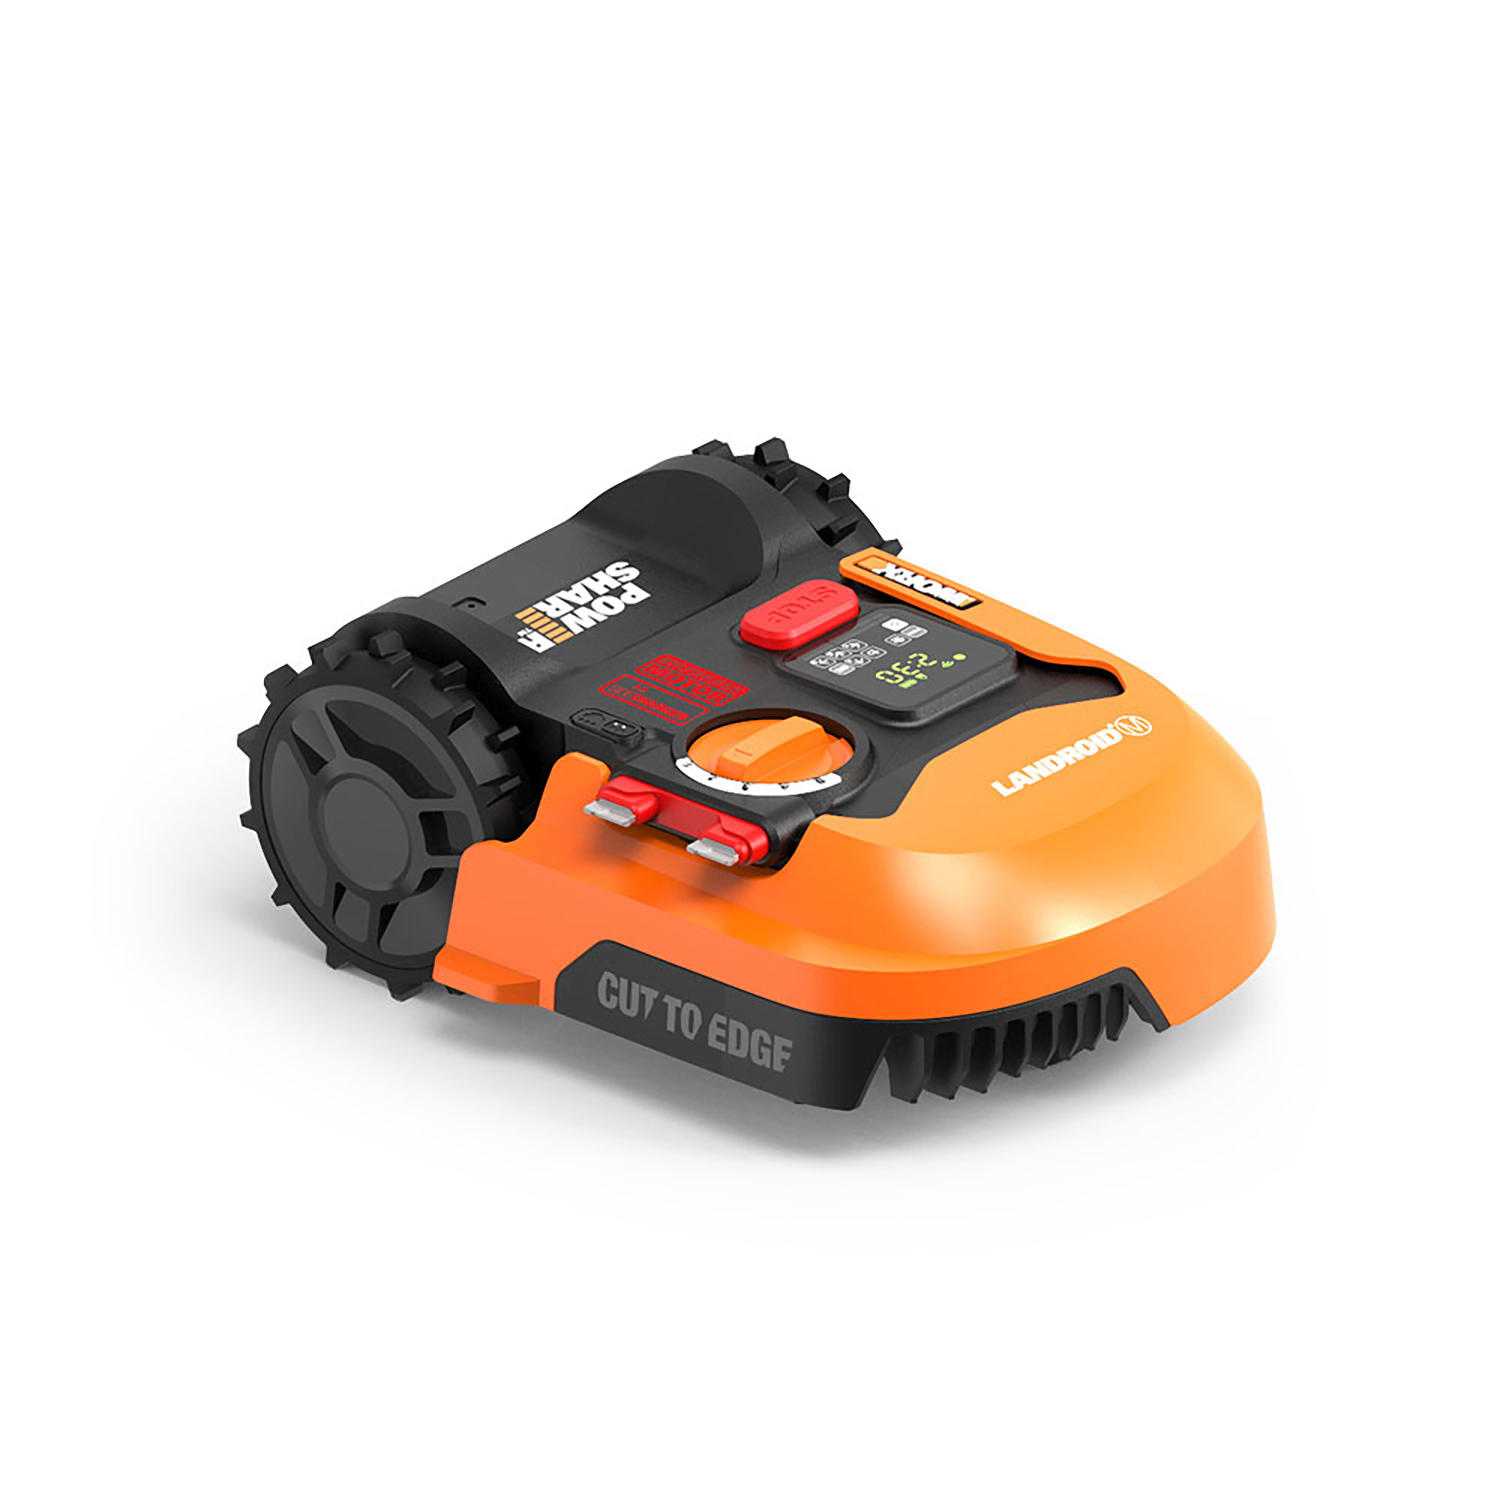 Worx Landroid M 20V Robotic Lawn Mower w/ Anti Collision Accessory